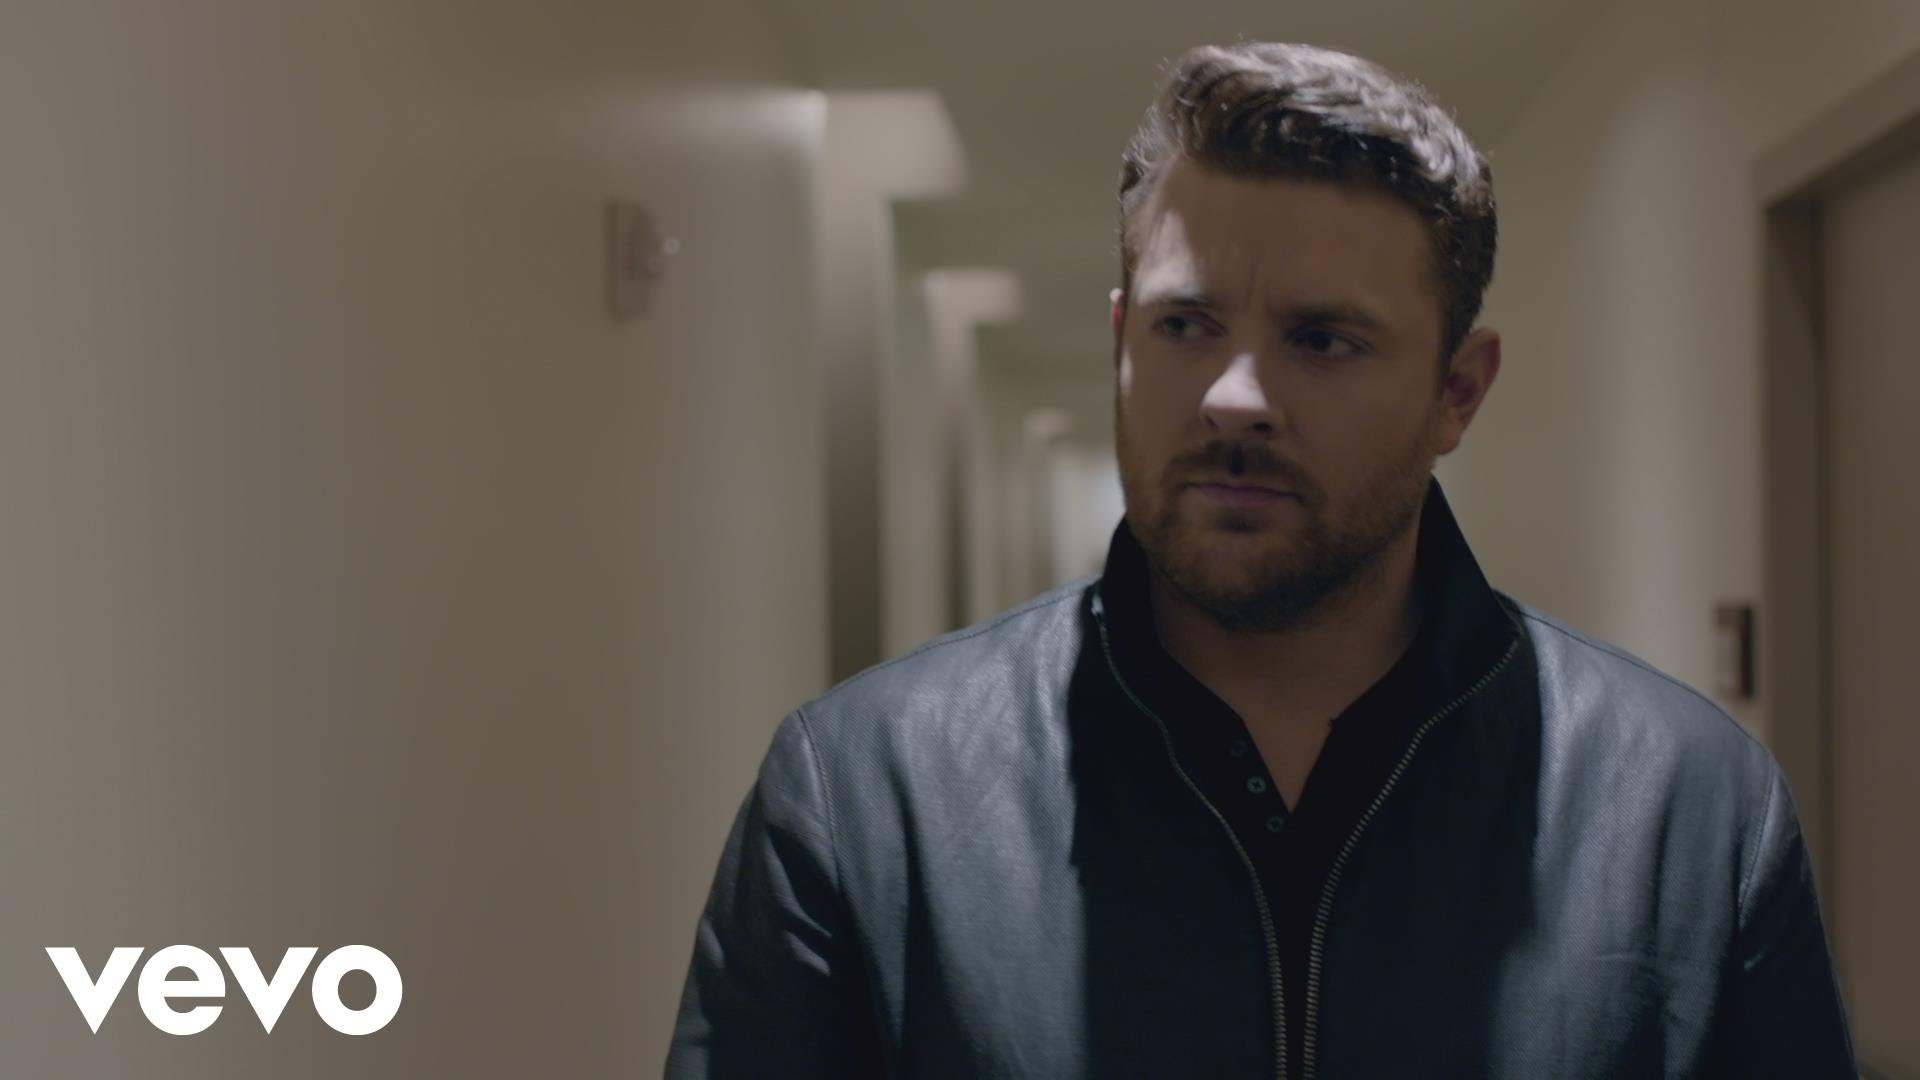 Third annual KSCS Country Fest bringing Chris Young to Dallas in December